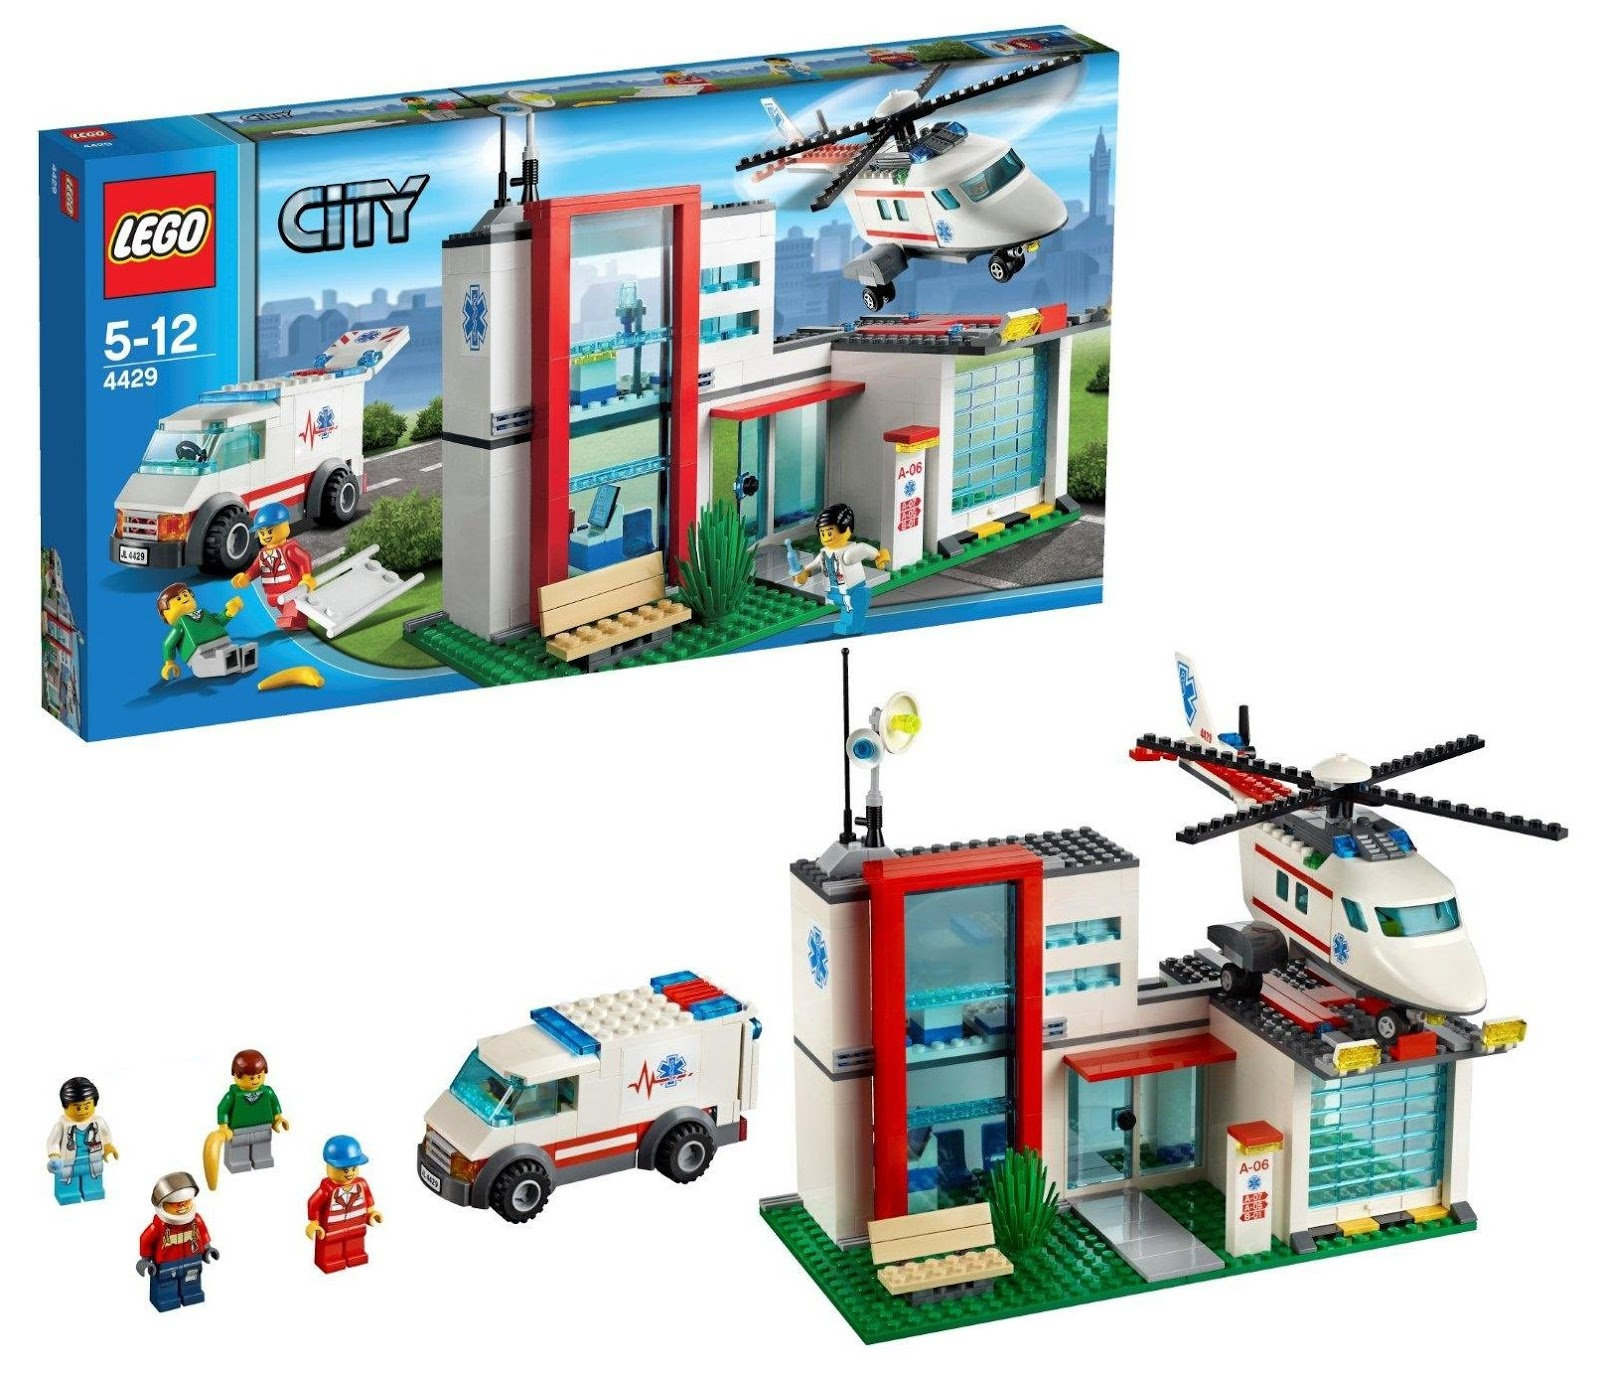 legos helicopter with Legos New Hospital And Mining Sets on Lego runway as well 261219058755 furthermore 4 More Lego Creator 3 In1 Vehicle Sets besides Ducktales Lego Ideas additionally Theme Dino 2010.